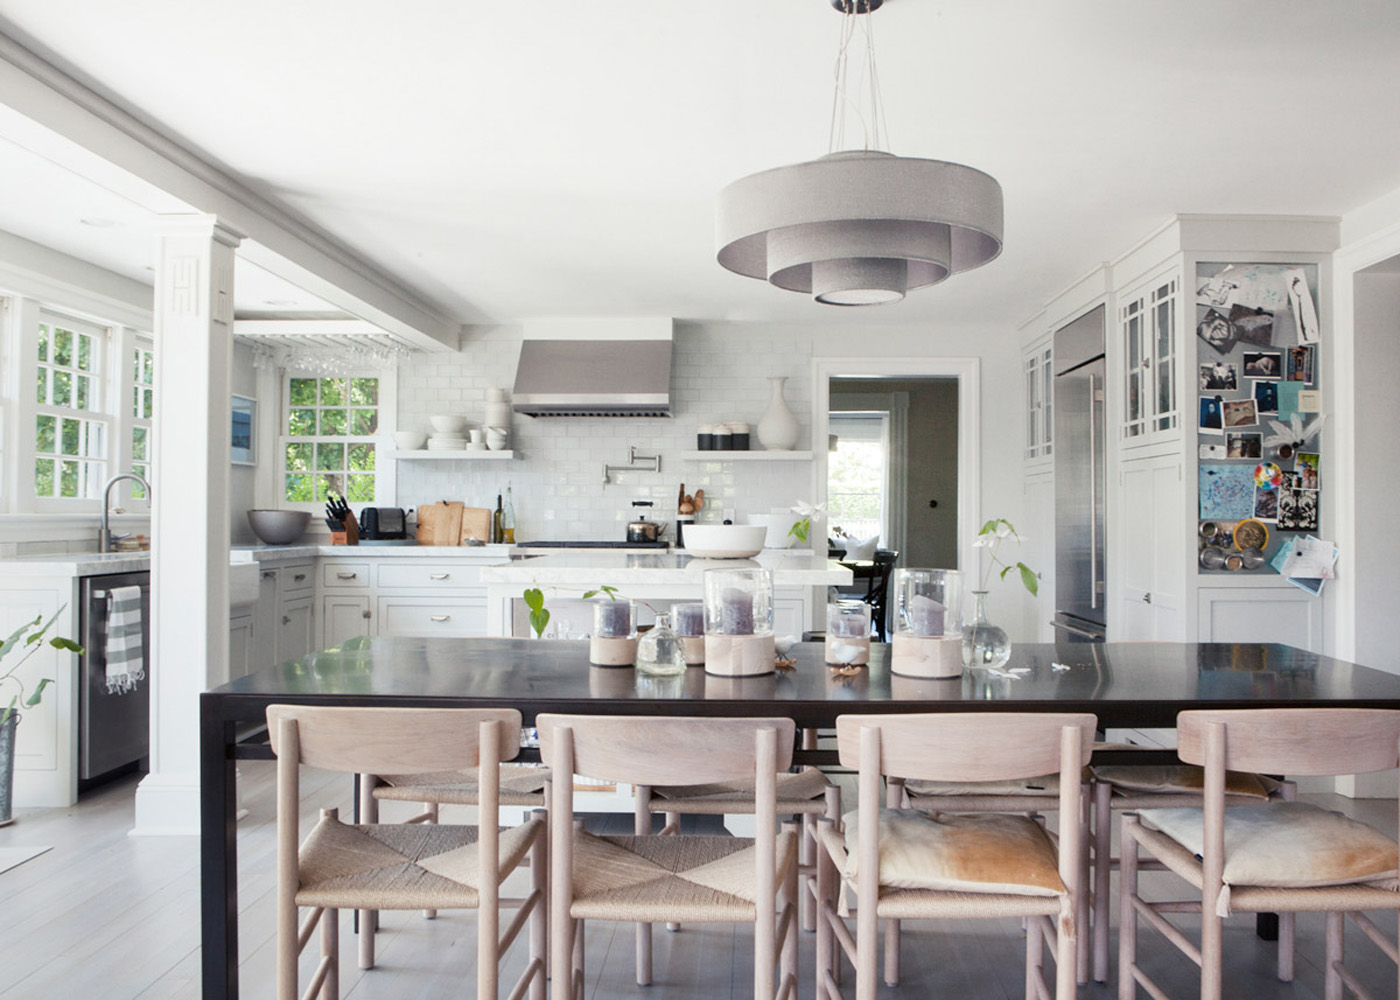 Farrin_Cary_Design_Interior_Hamptons_0251.jpg